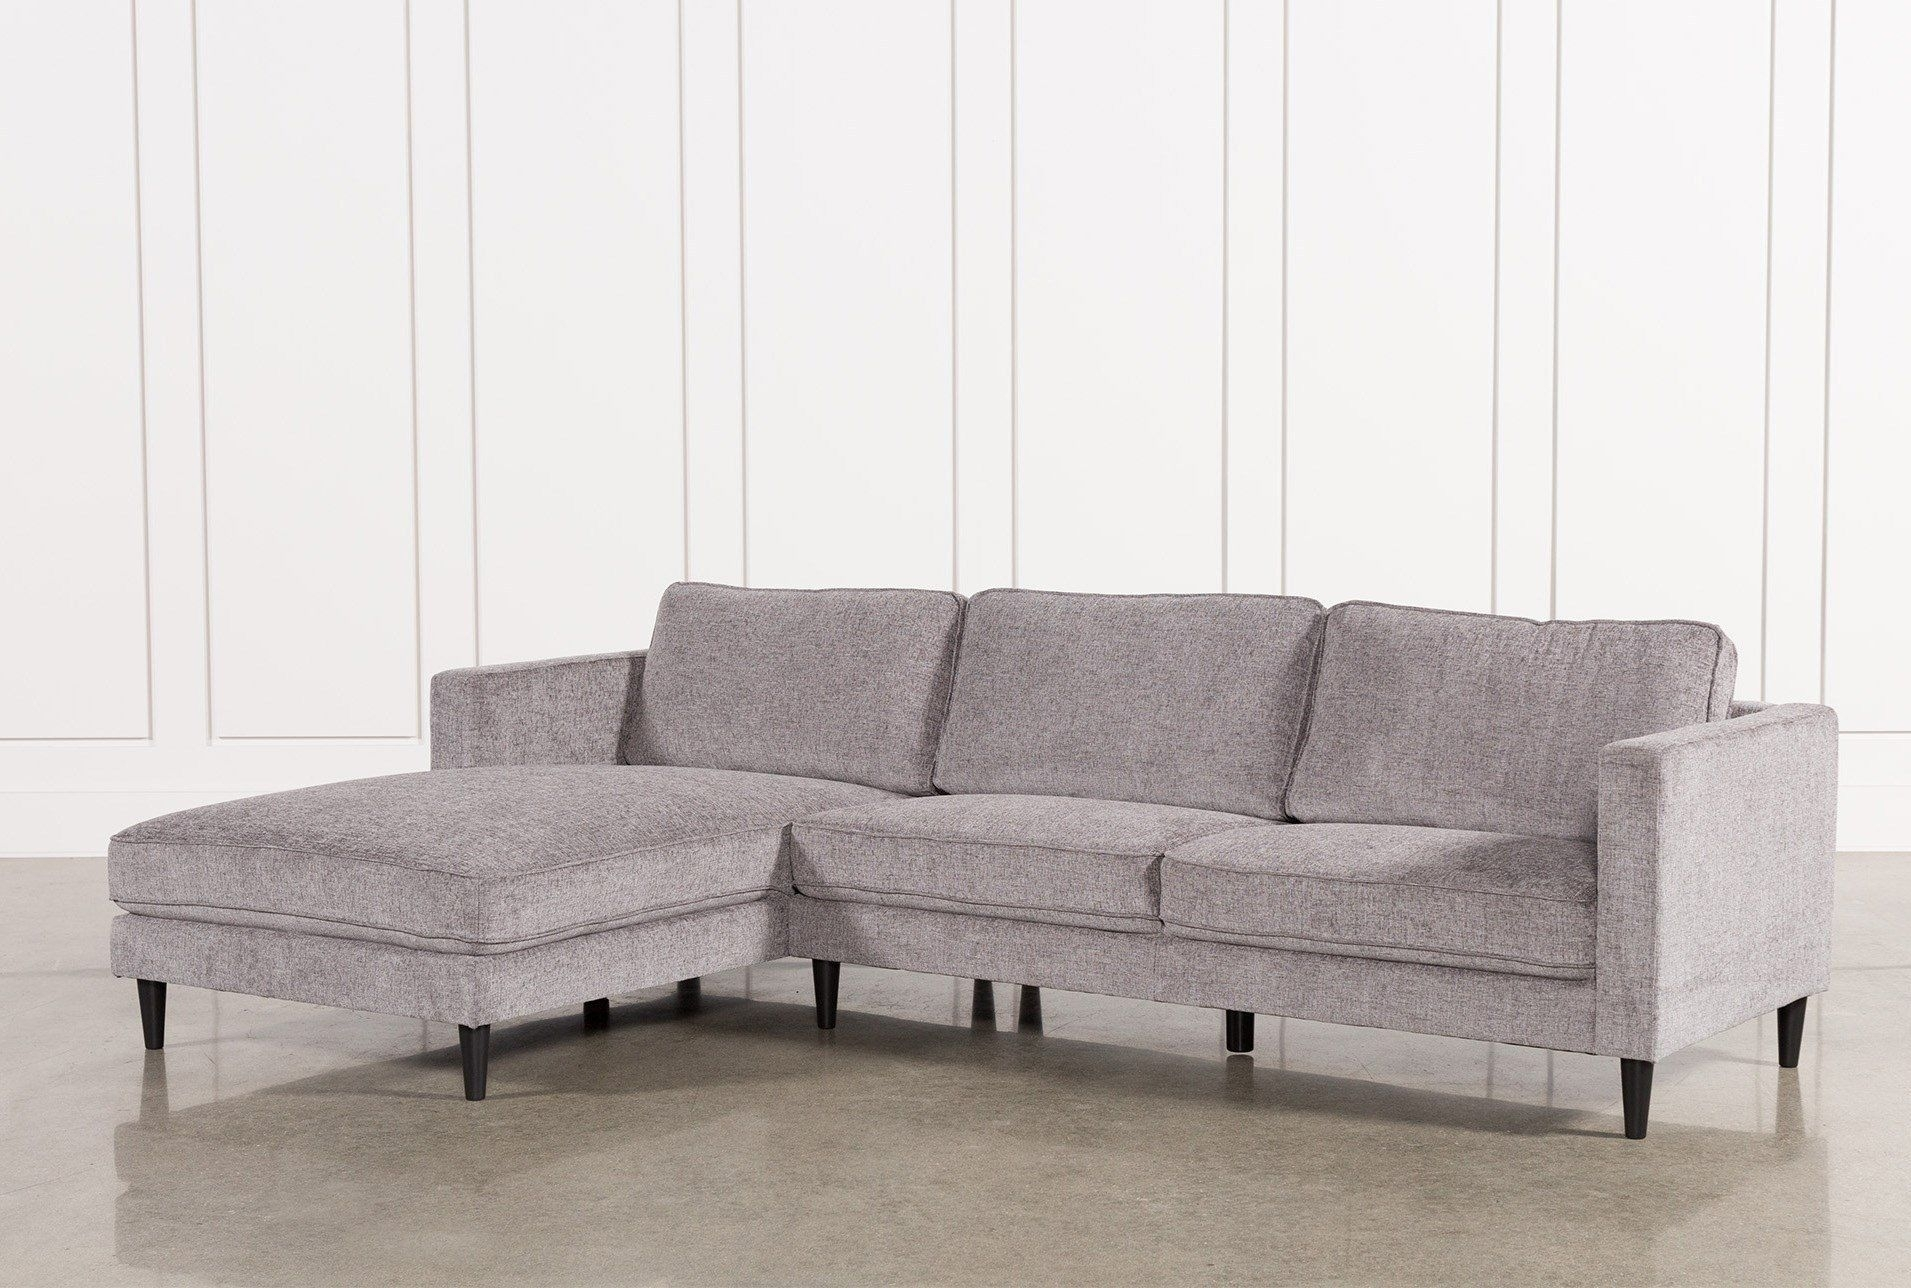 Cosmos Grey 2 Piece Sectional W/laf Chaise | Couches | Pinterest For Egan Ii Cement Sofa Sectionals With Reversible Chaise (Image 6 of 25)